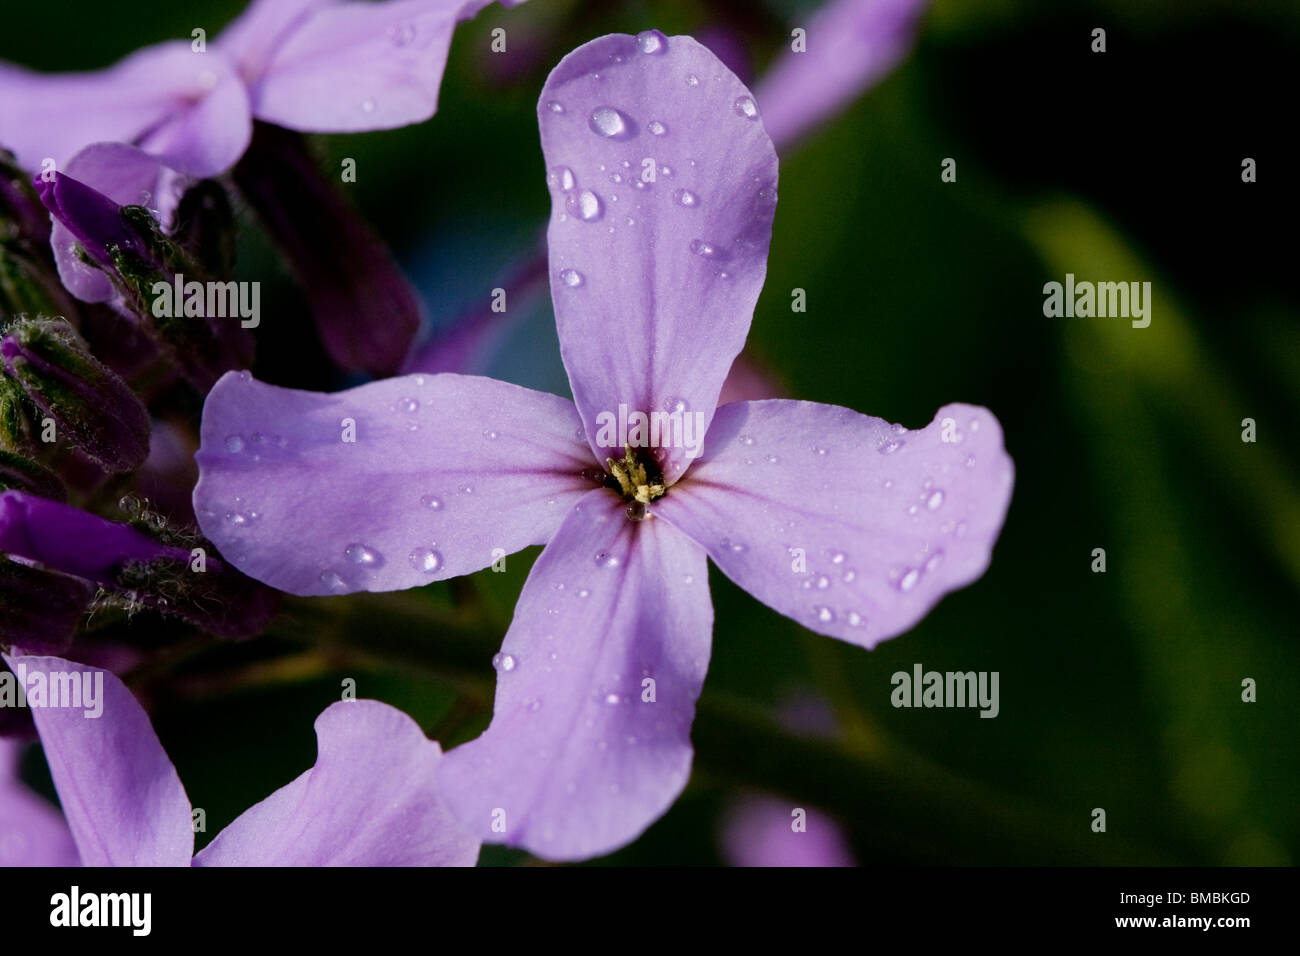 A lilac flower - Stock Image